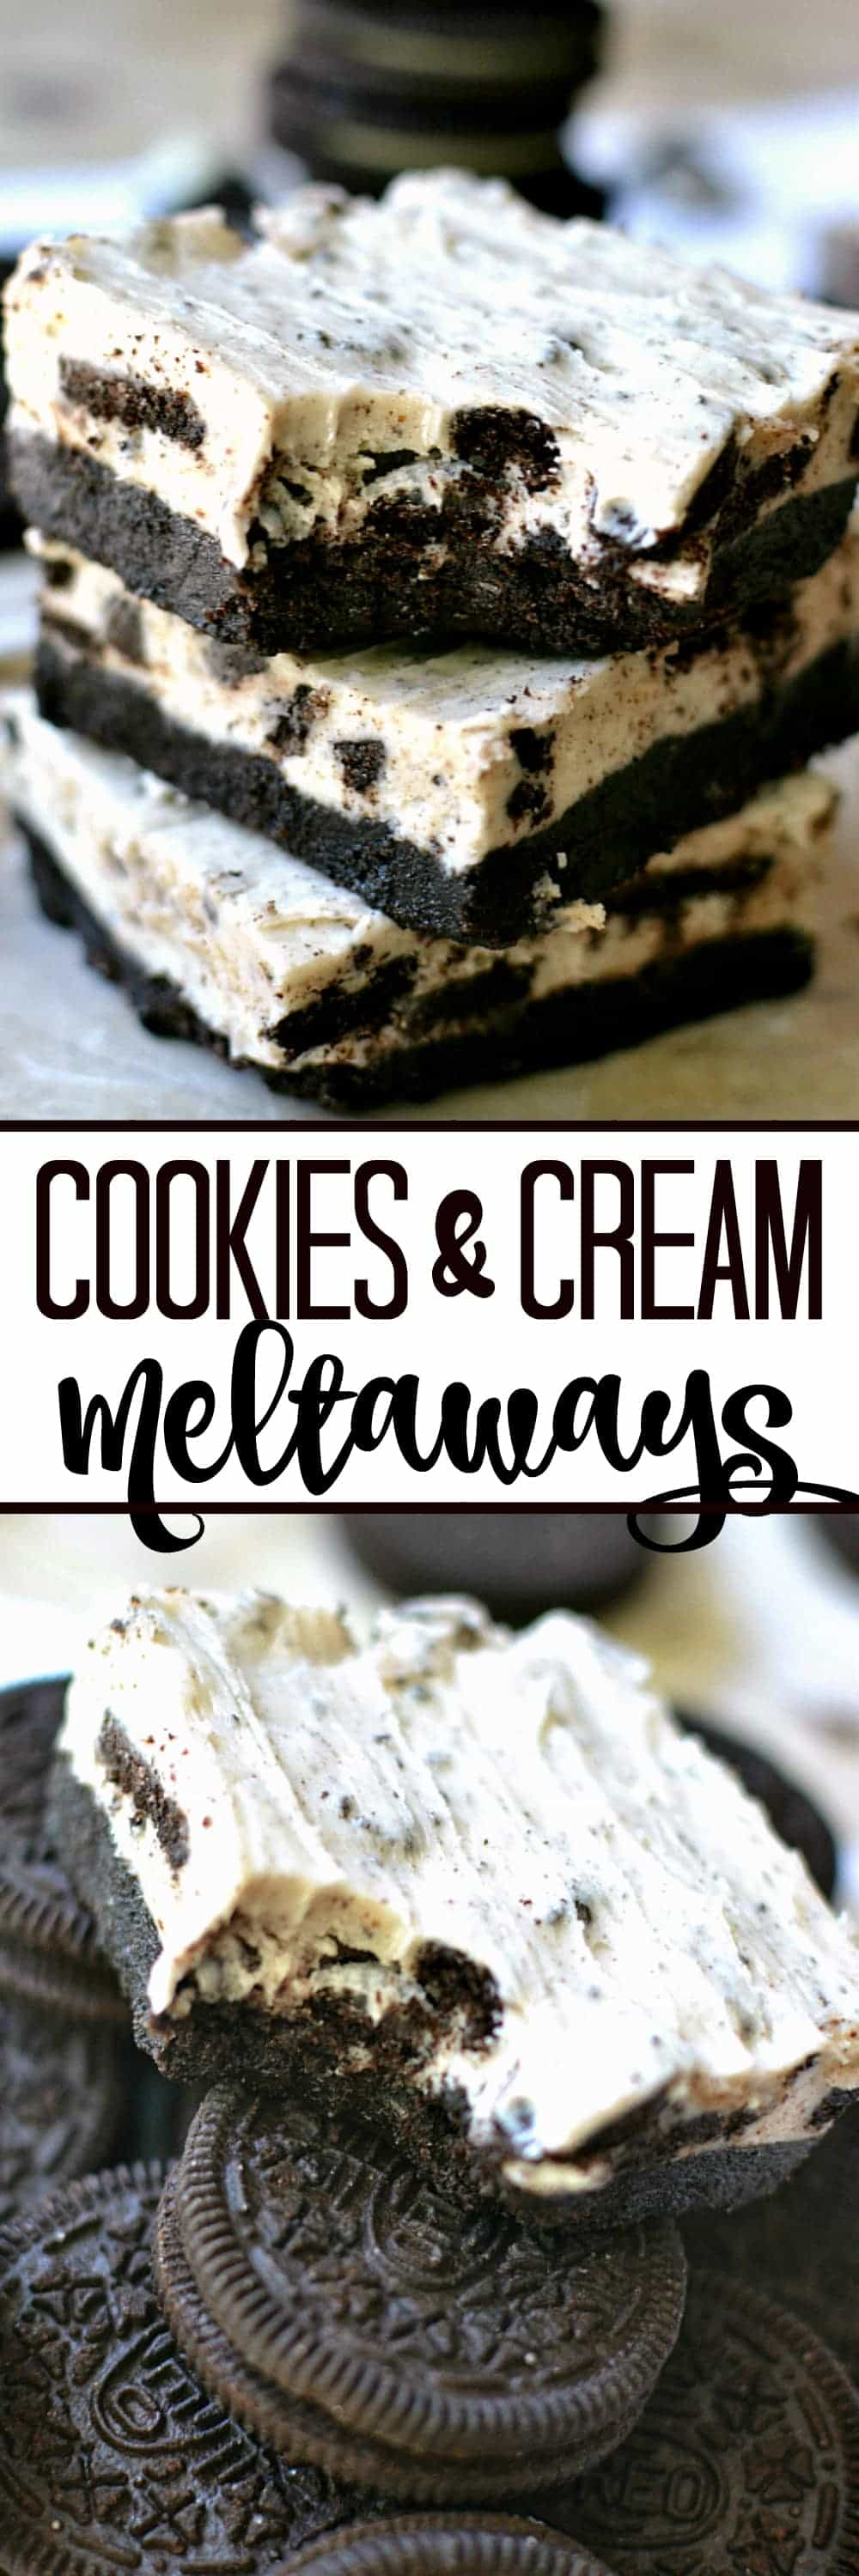 No-Bake Cookies & Cream Meltaways - an extra-creamy, melt in your mouth way to enjoy cookies & cream!